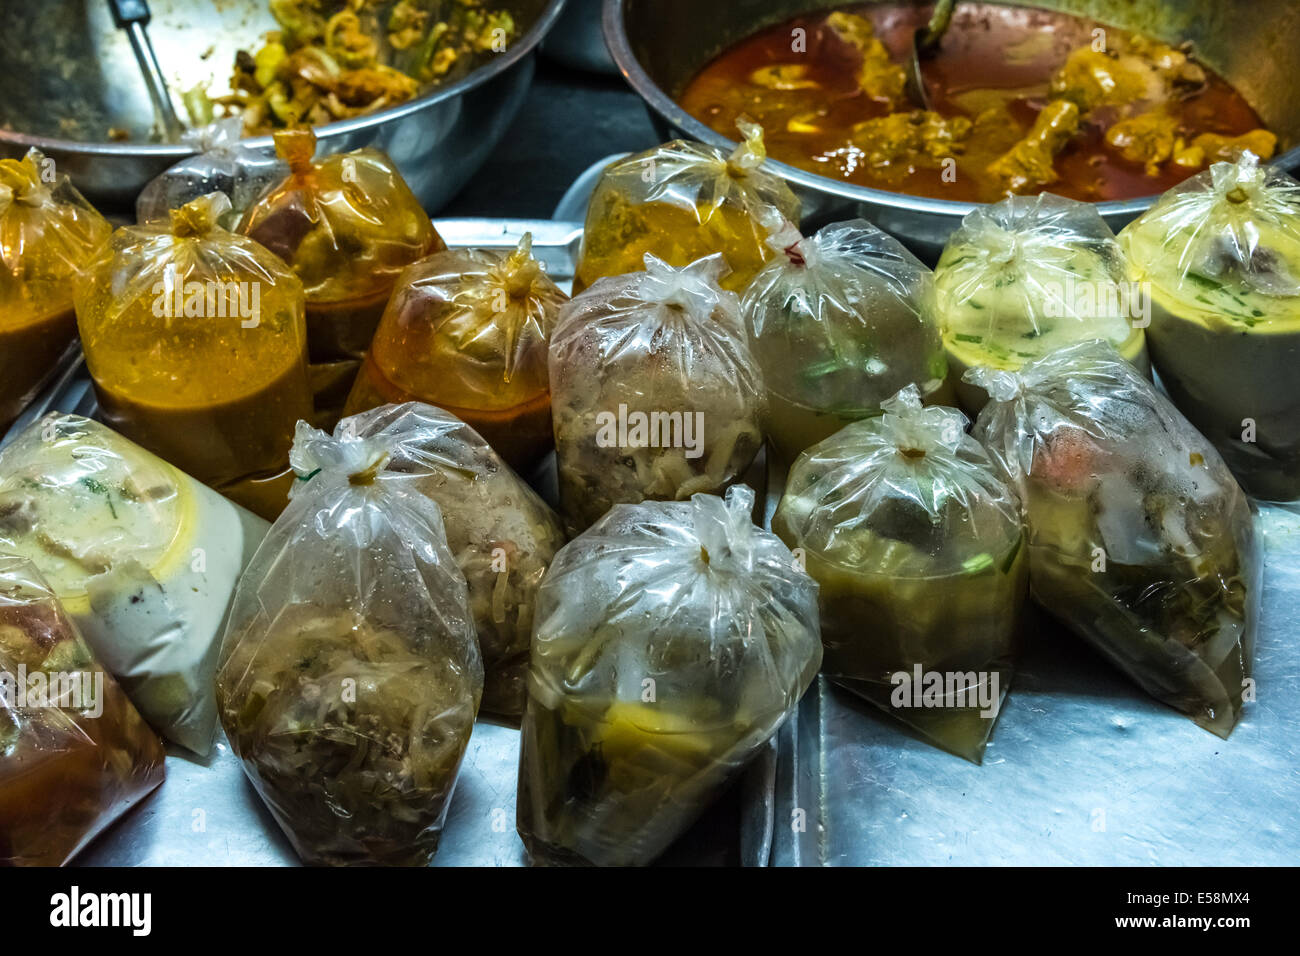 Thai soups for sale in the market. Thai food in plastic bag - Stock Image